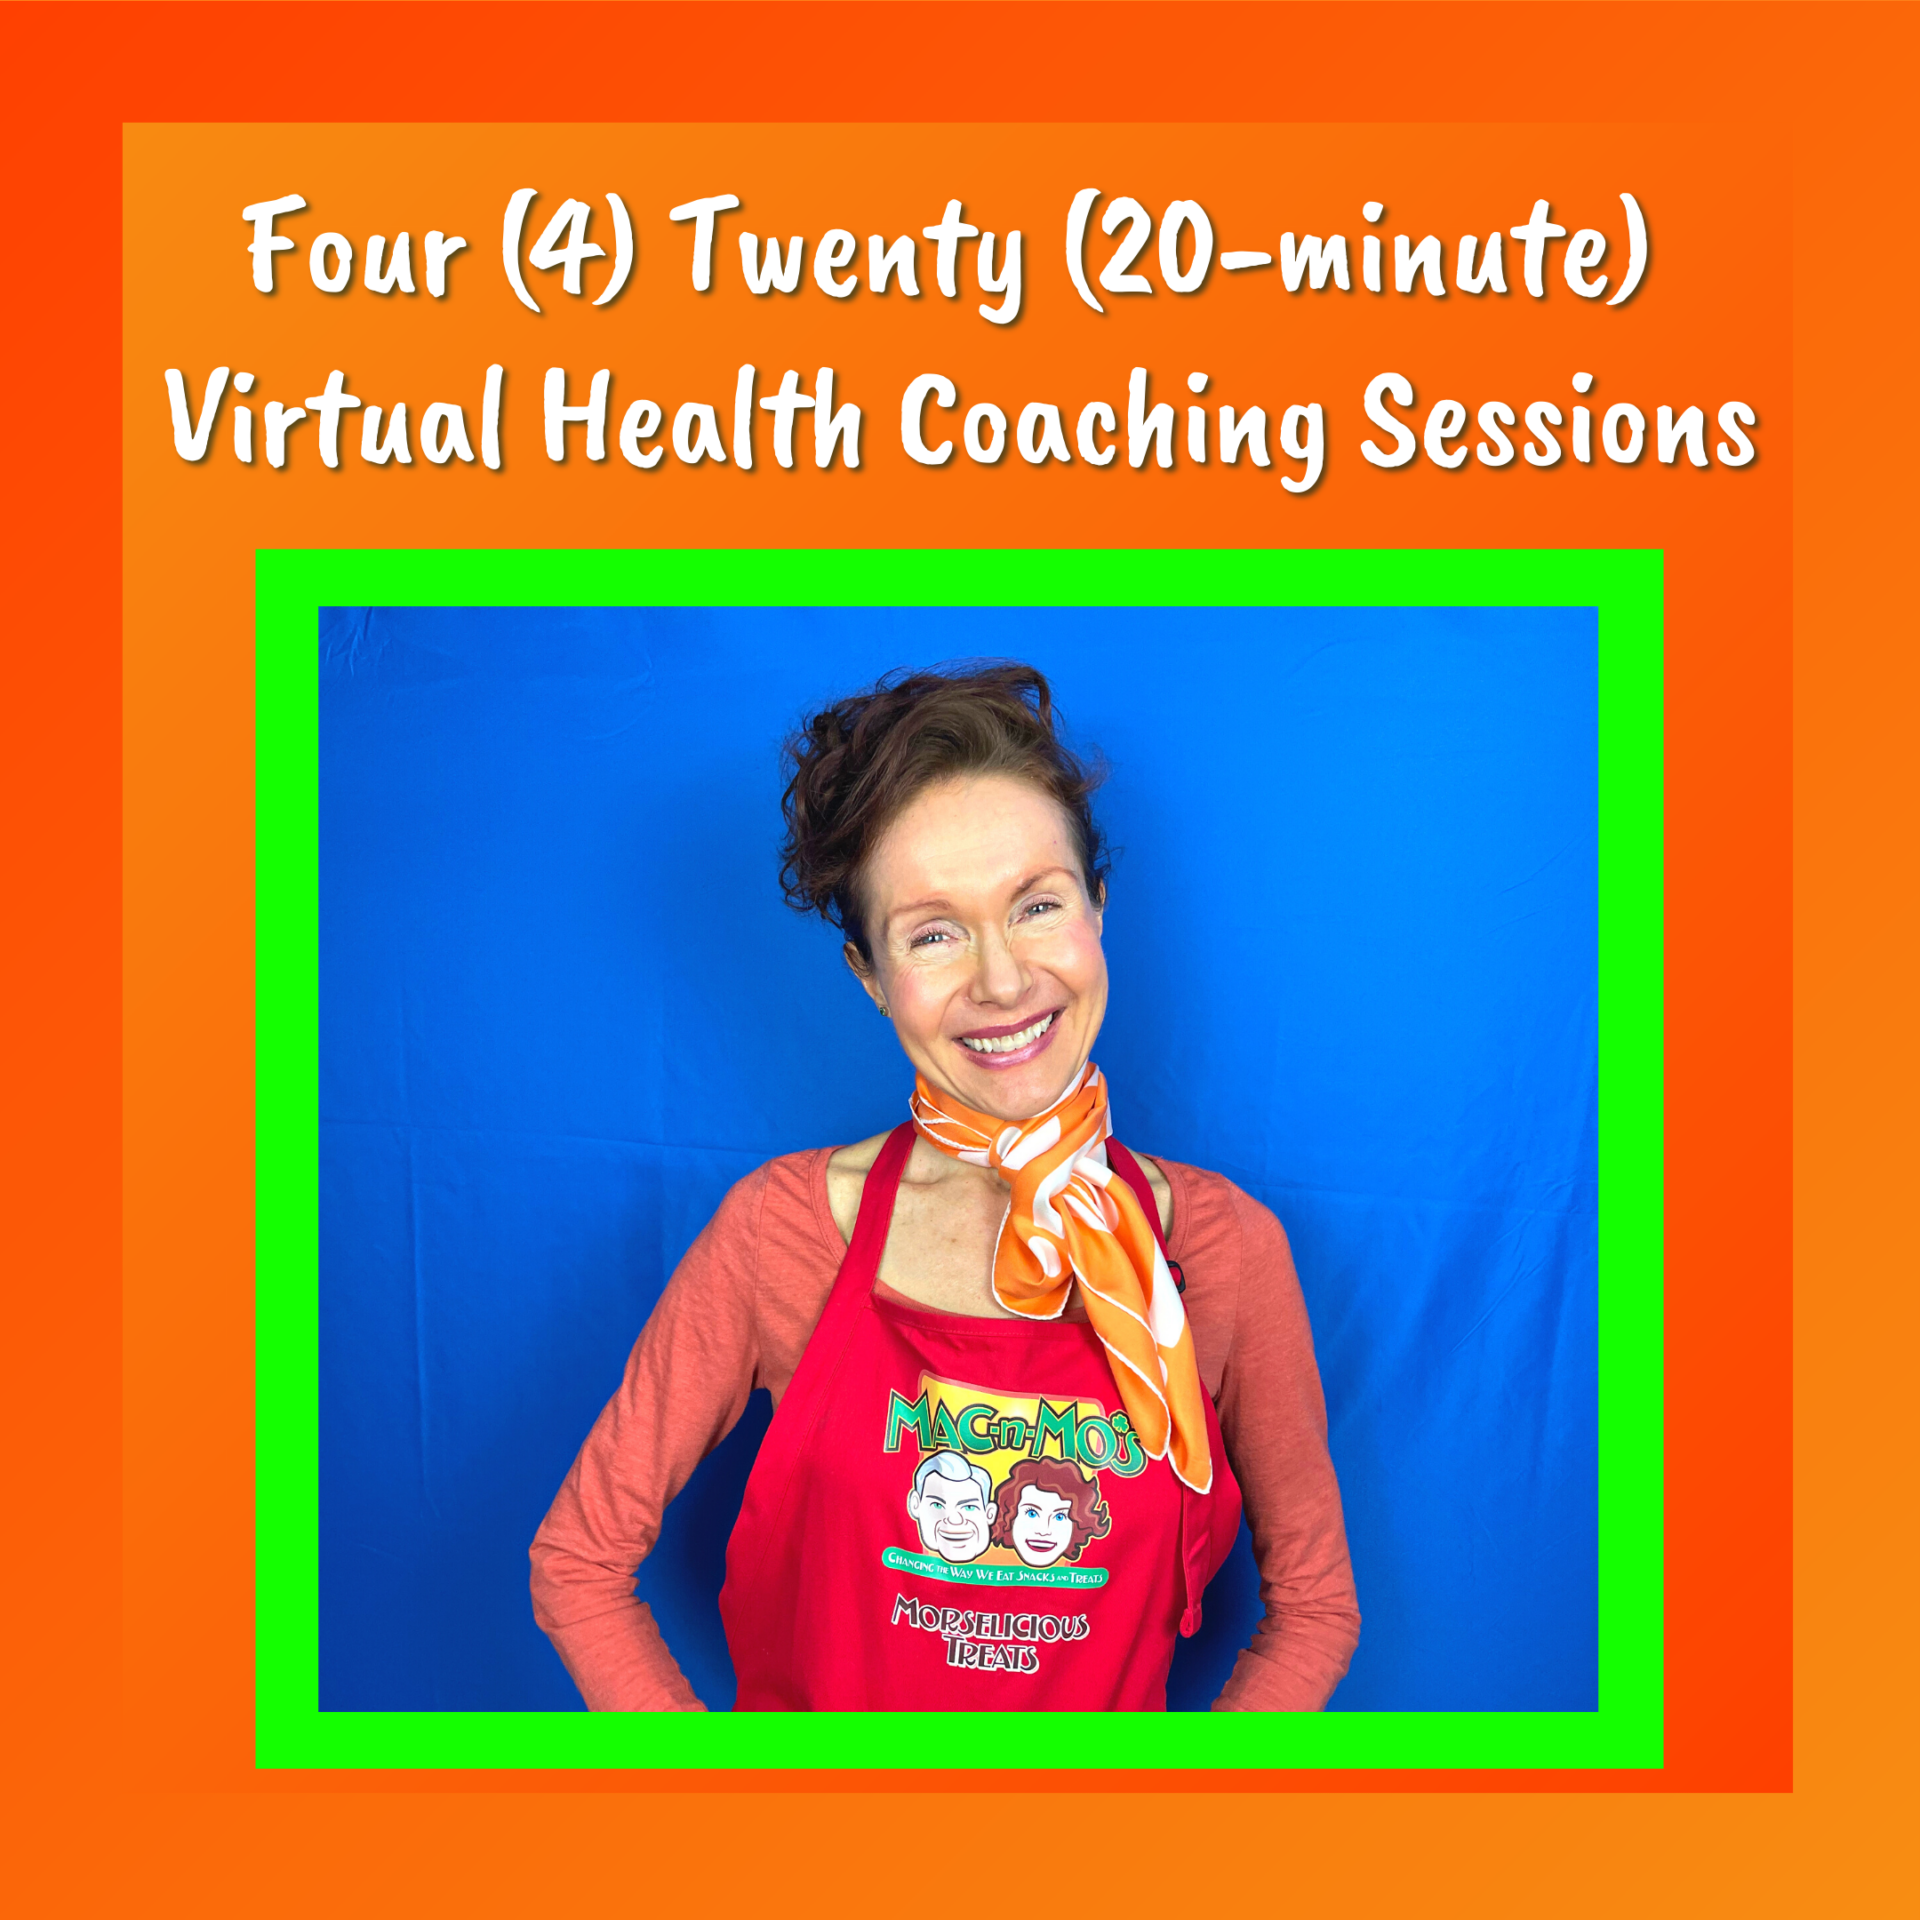 Flyer for Four Twenty Minute Virtual Health Coaching Sessions with Mo, the Morselist. Photo of Mo smiling against blue backdrop.